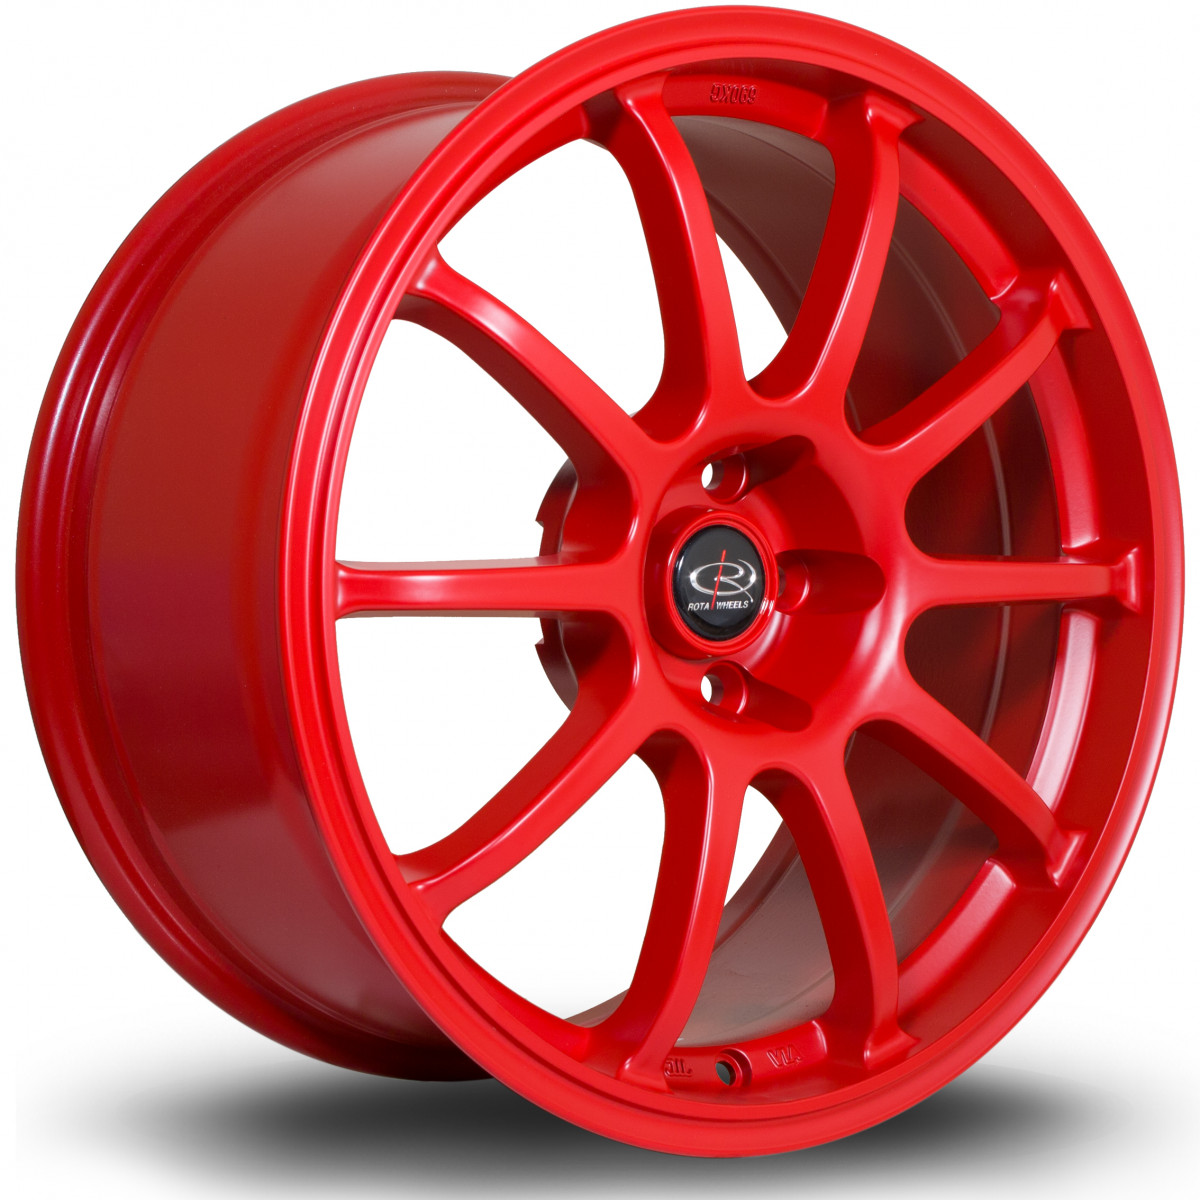 Force 17x8 5x100 ET35 Flat Red